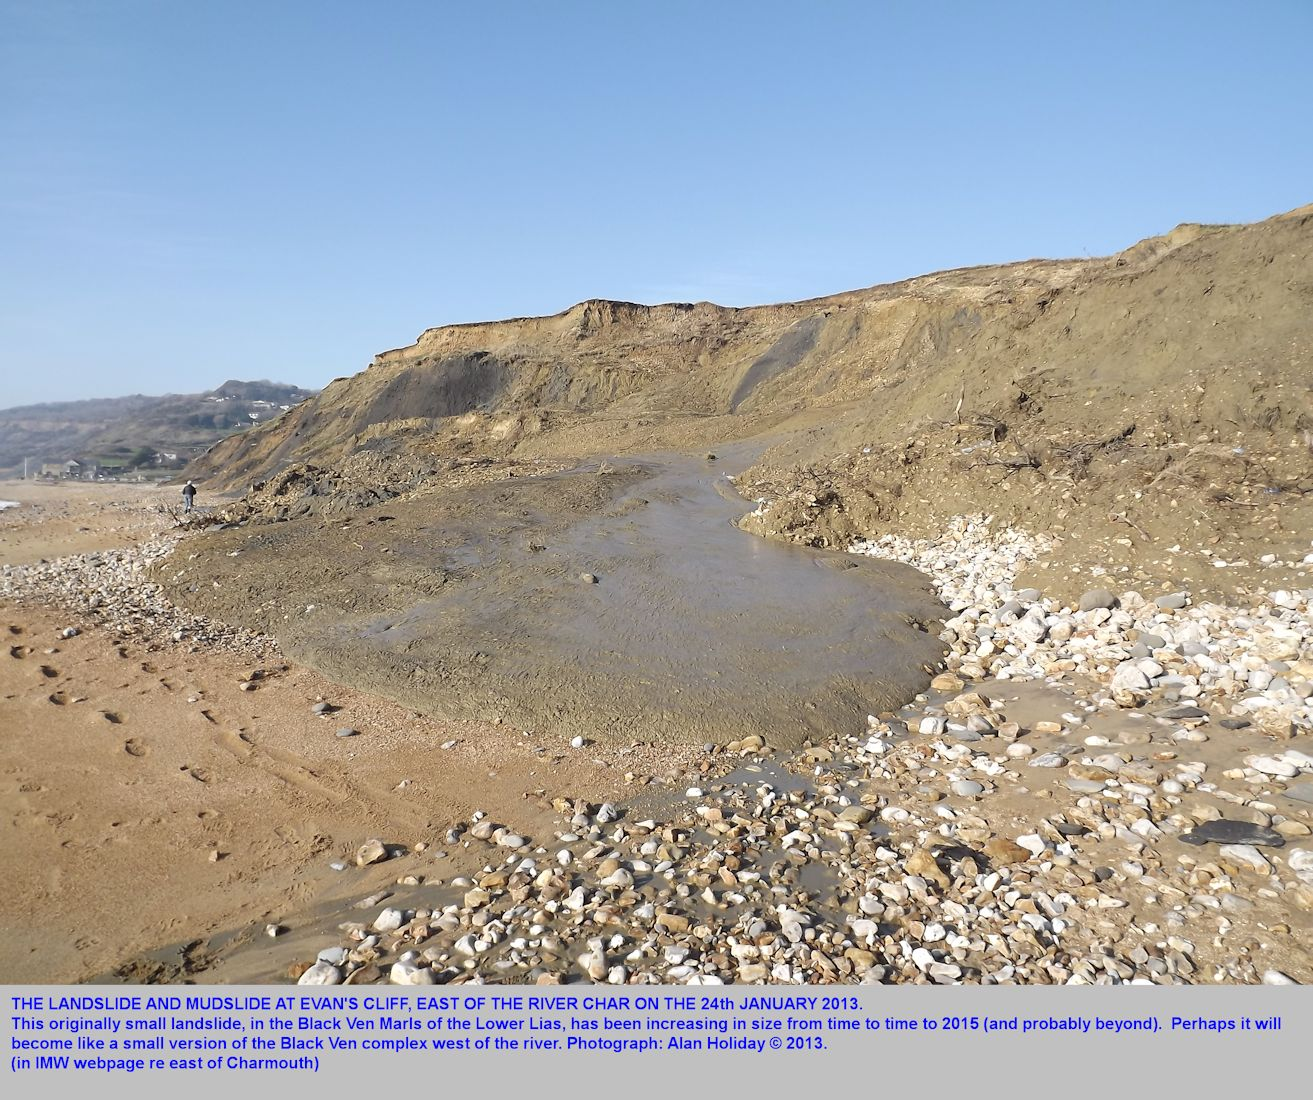 The muddy seaward end of the landslide at Evan's Cliff, east of the river Char at Charmouth, Dorset, as photographed by Alan Holiday on 24th January 2013